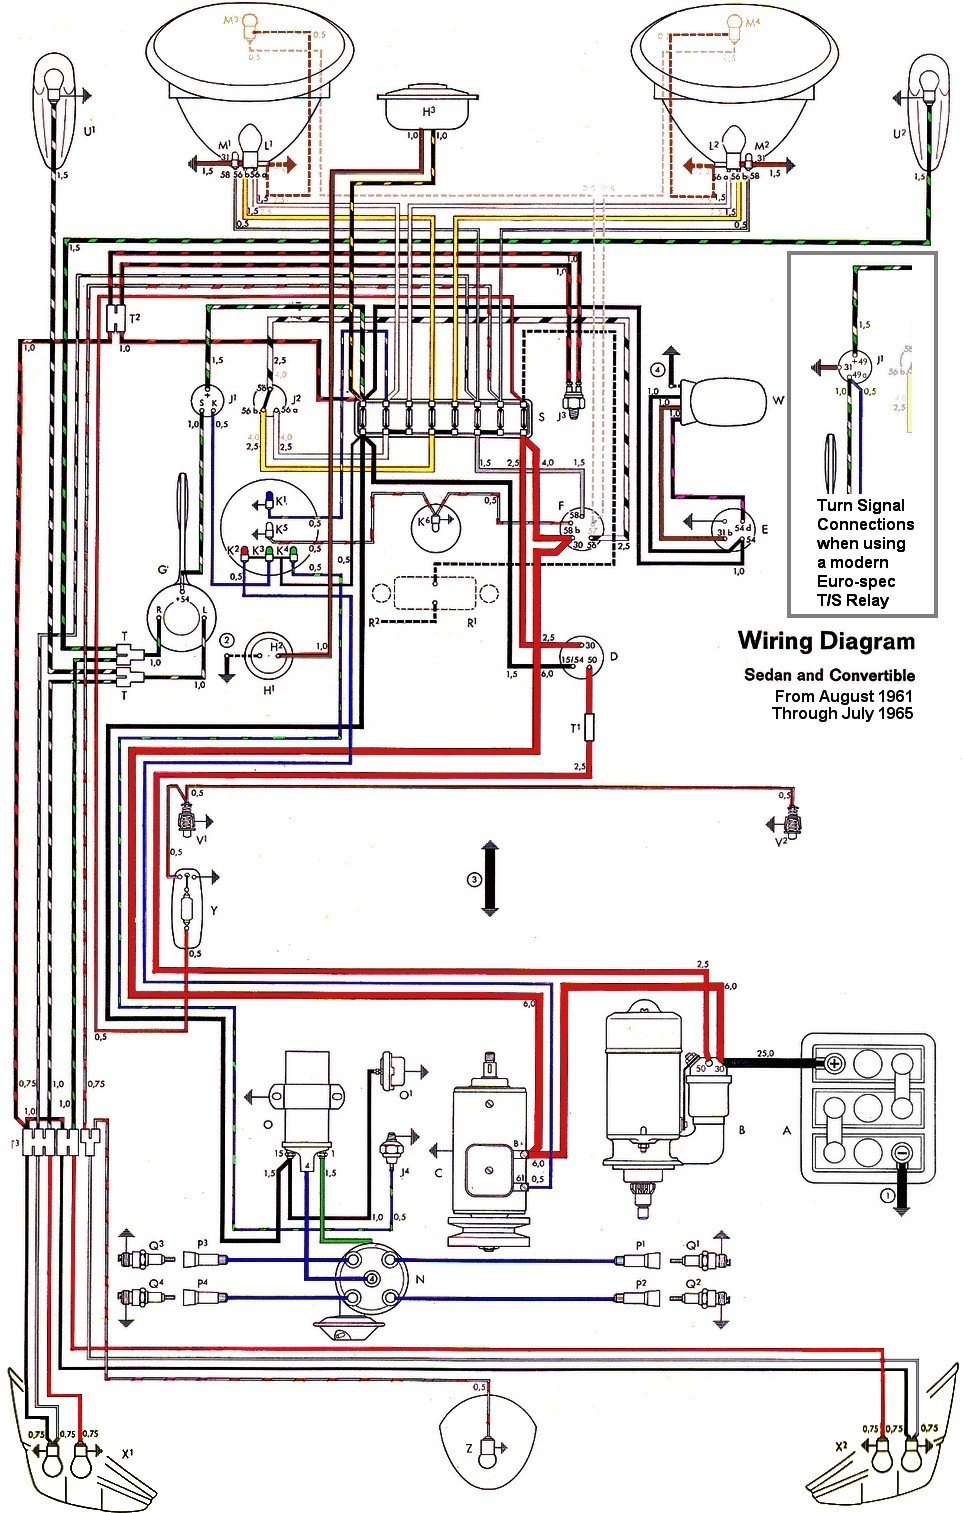 thesamba com type 1 wiring diagrams rh thesamba com VW Wiring Harness Diagram 67 VW Beetle Wiring Diagram